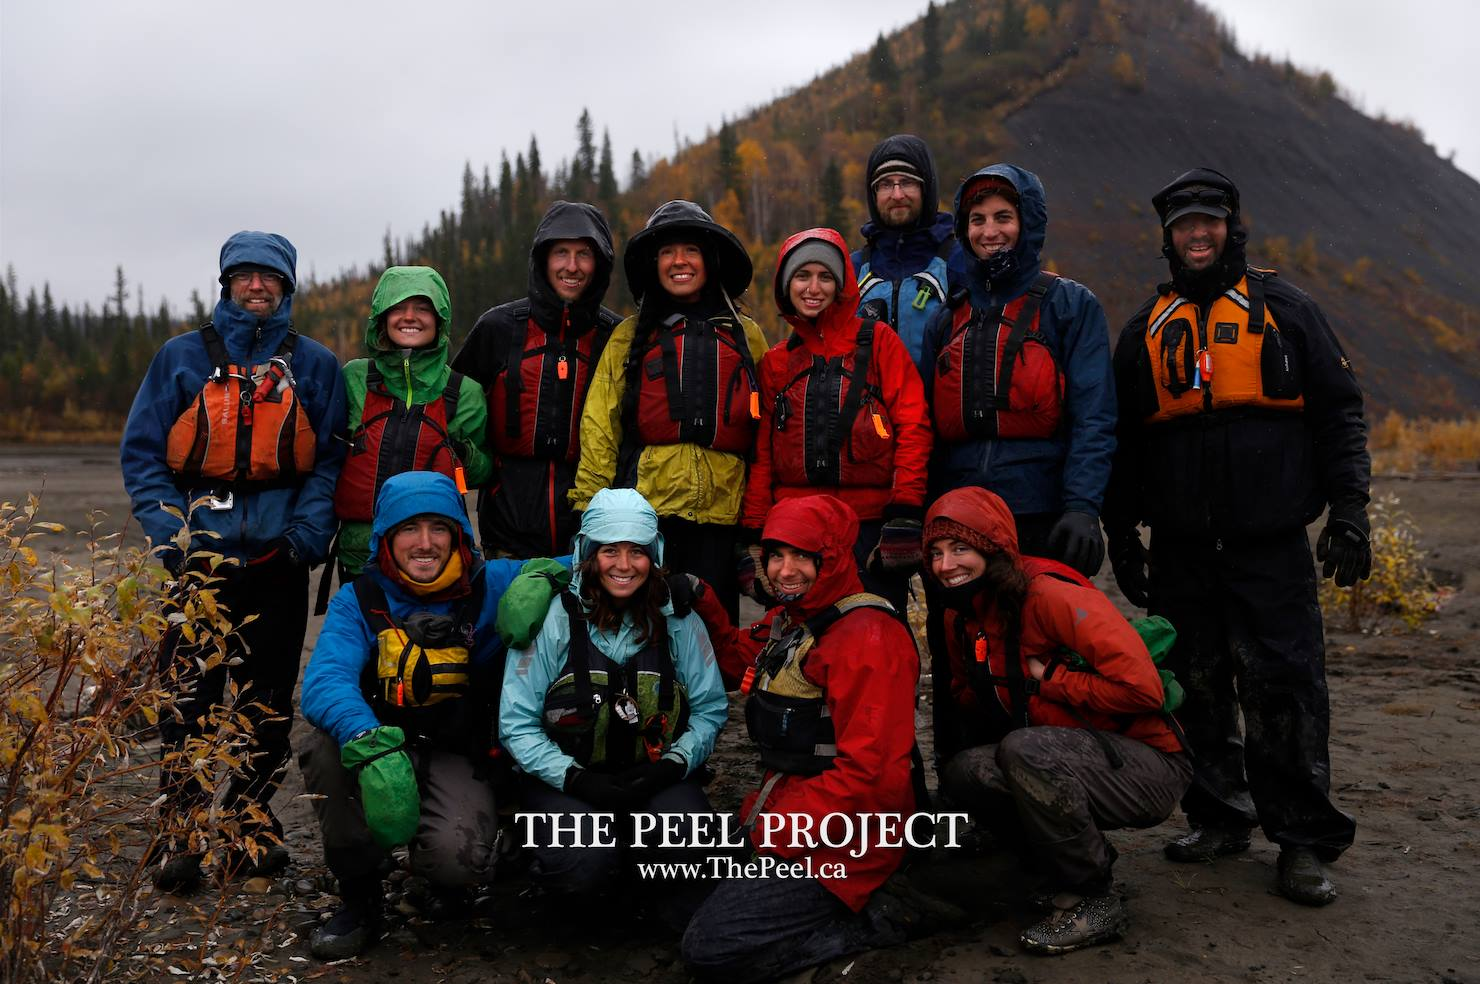 Returned home safely from the arctic with Peel Project